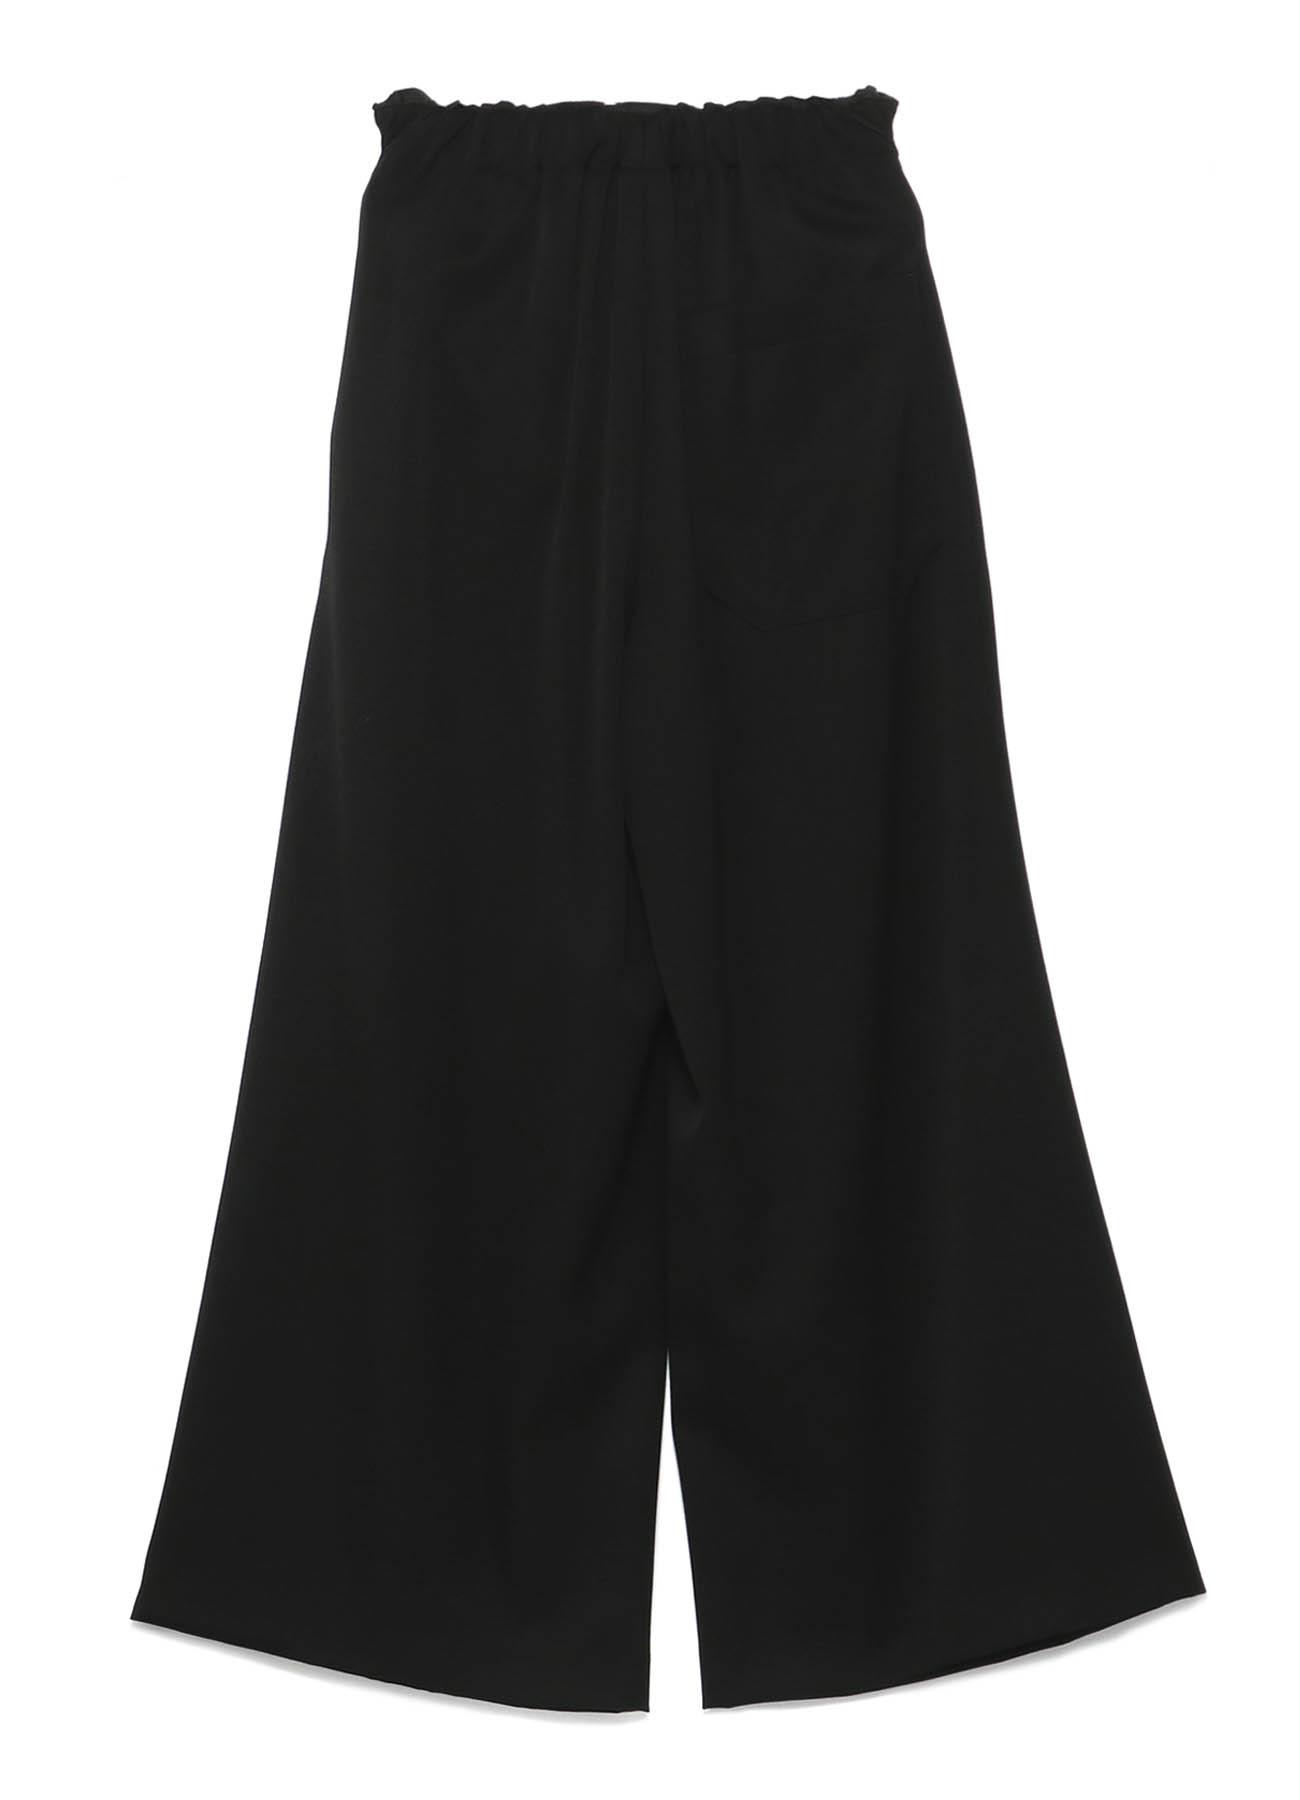 Y'sPINK TUXEDO CLOTH DOUBLE WAIST PANTS